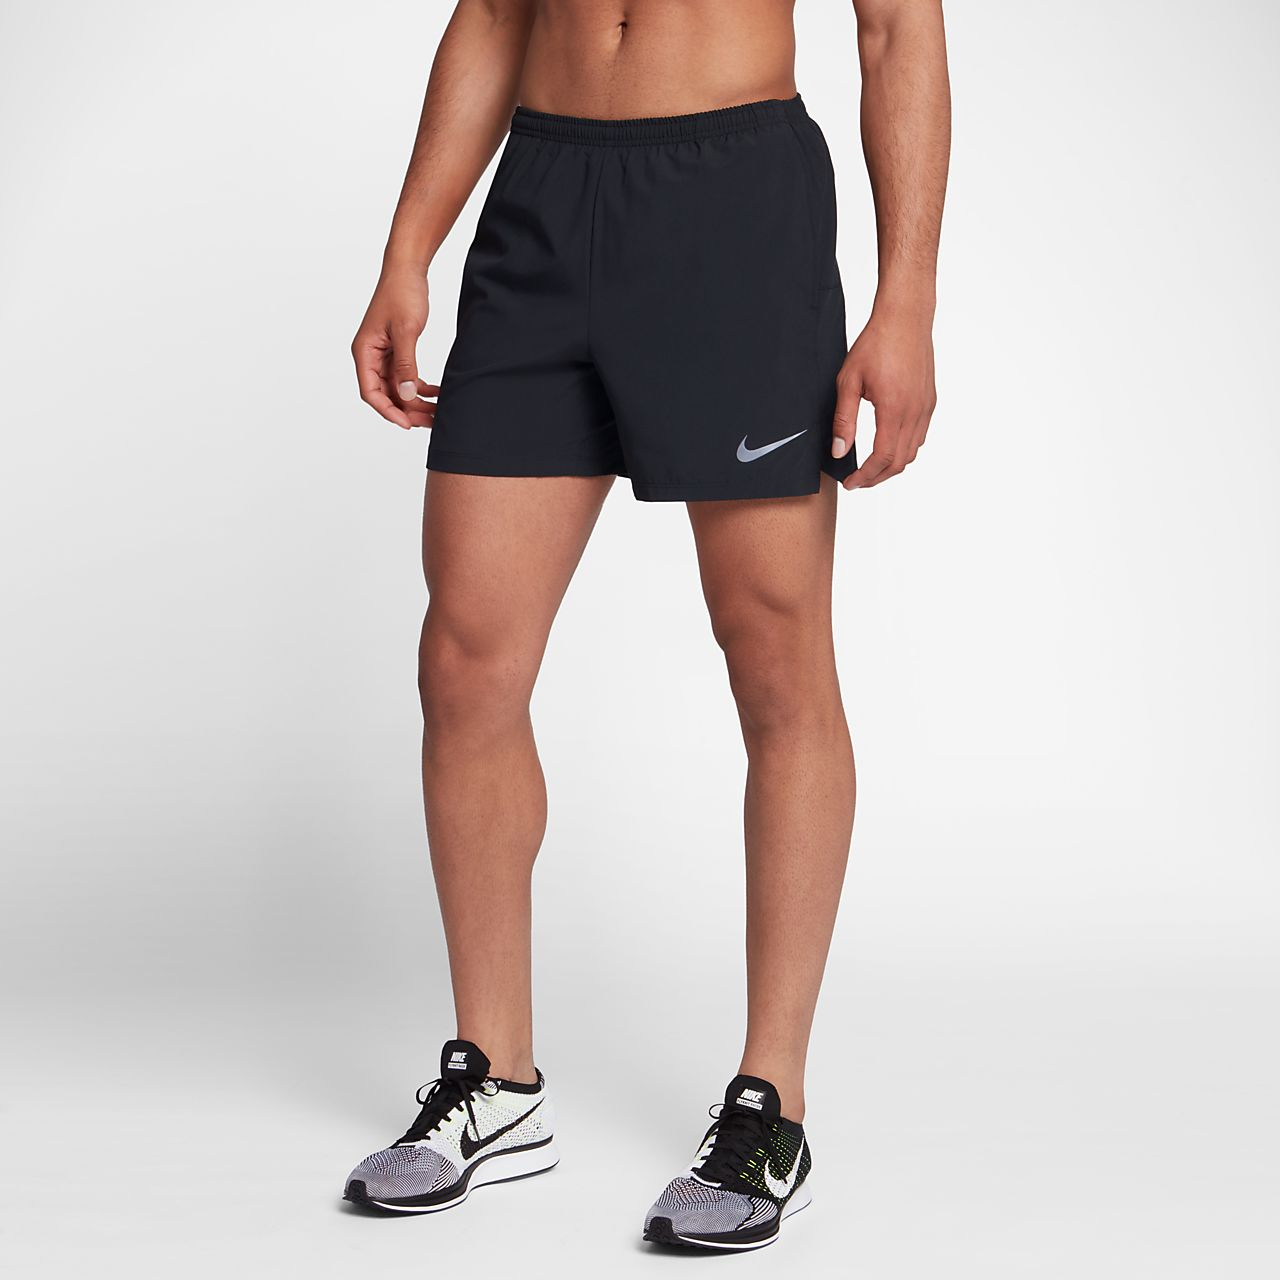 nike free run mens 12 inch shorts